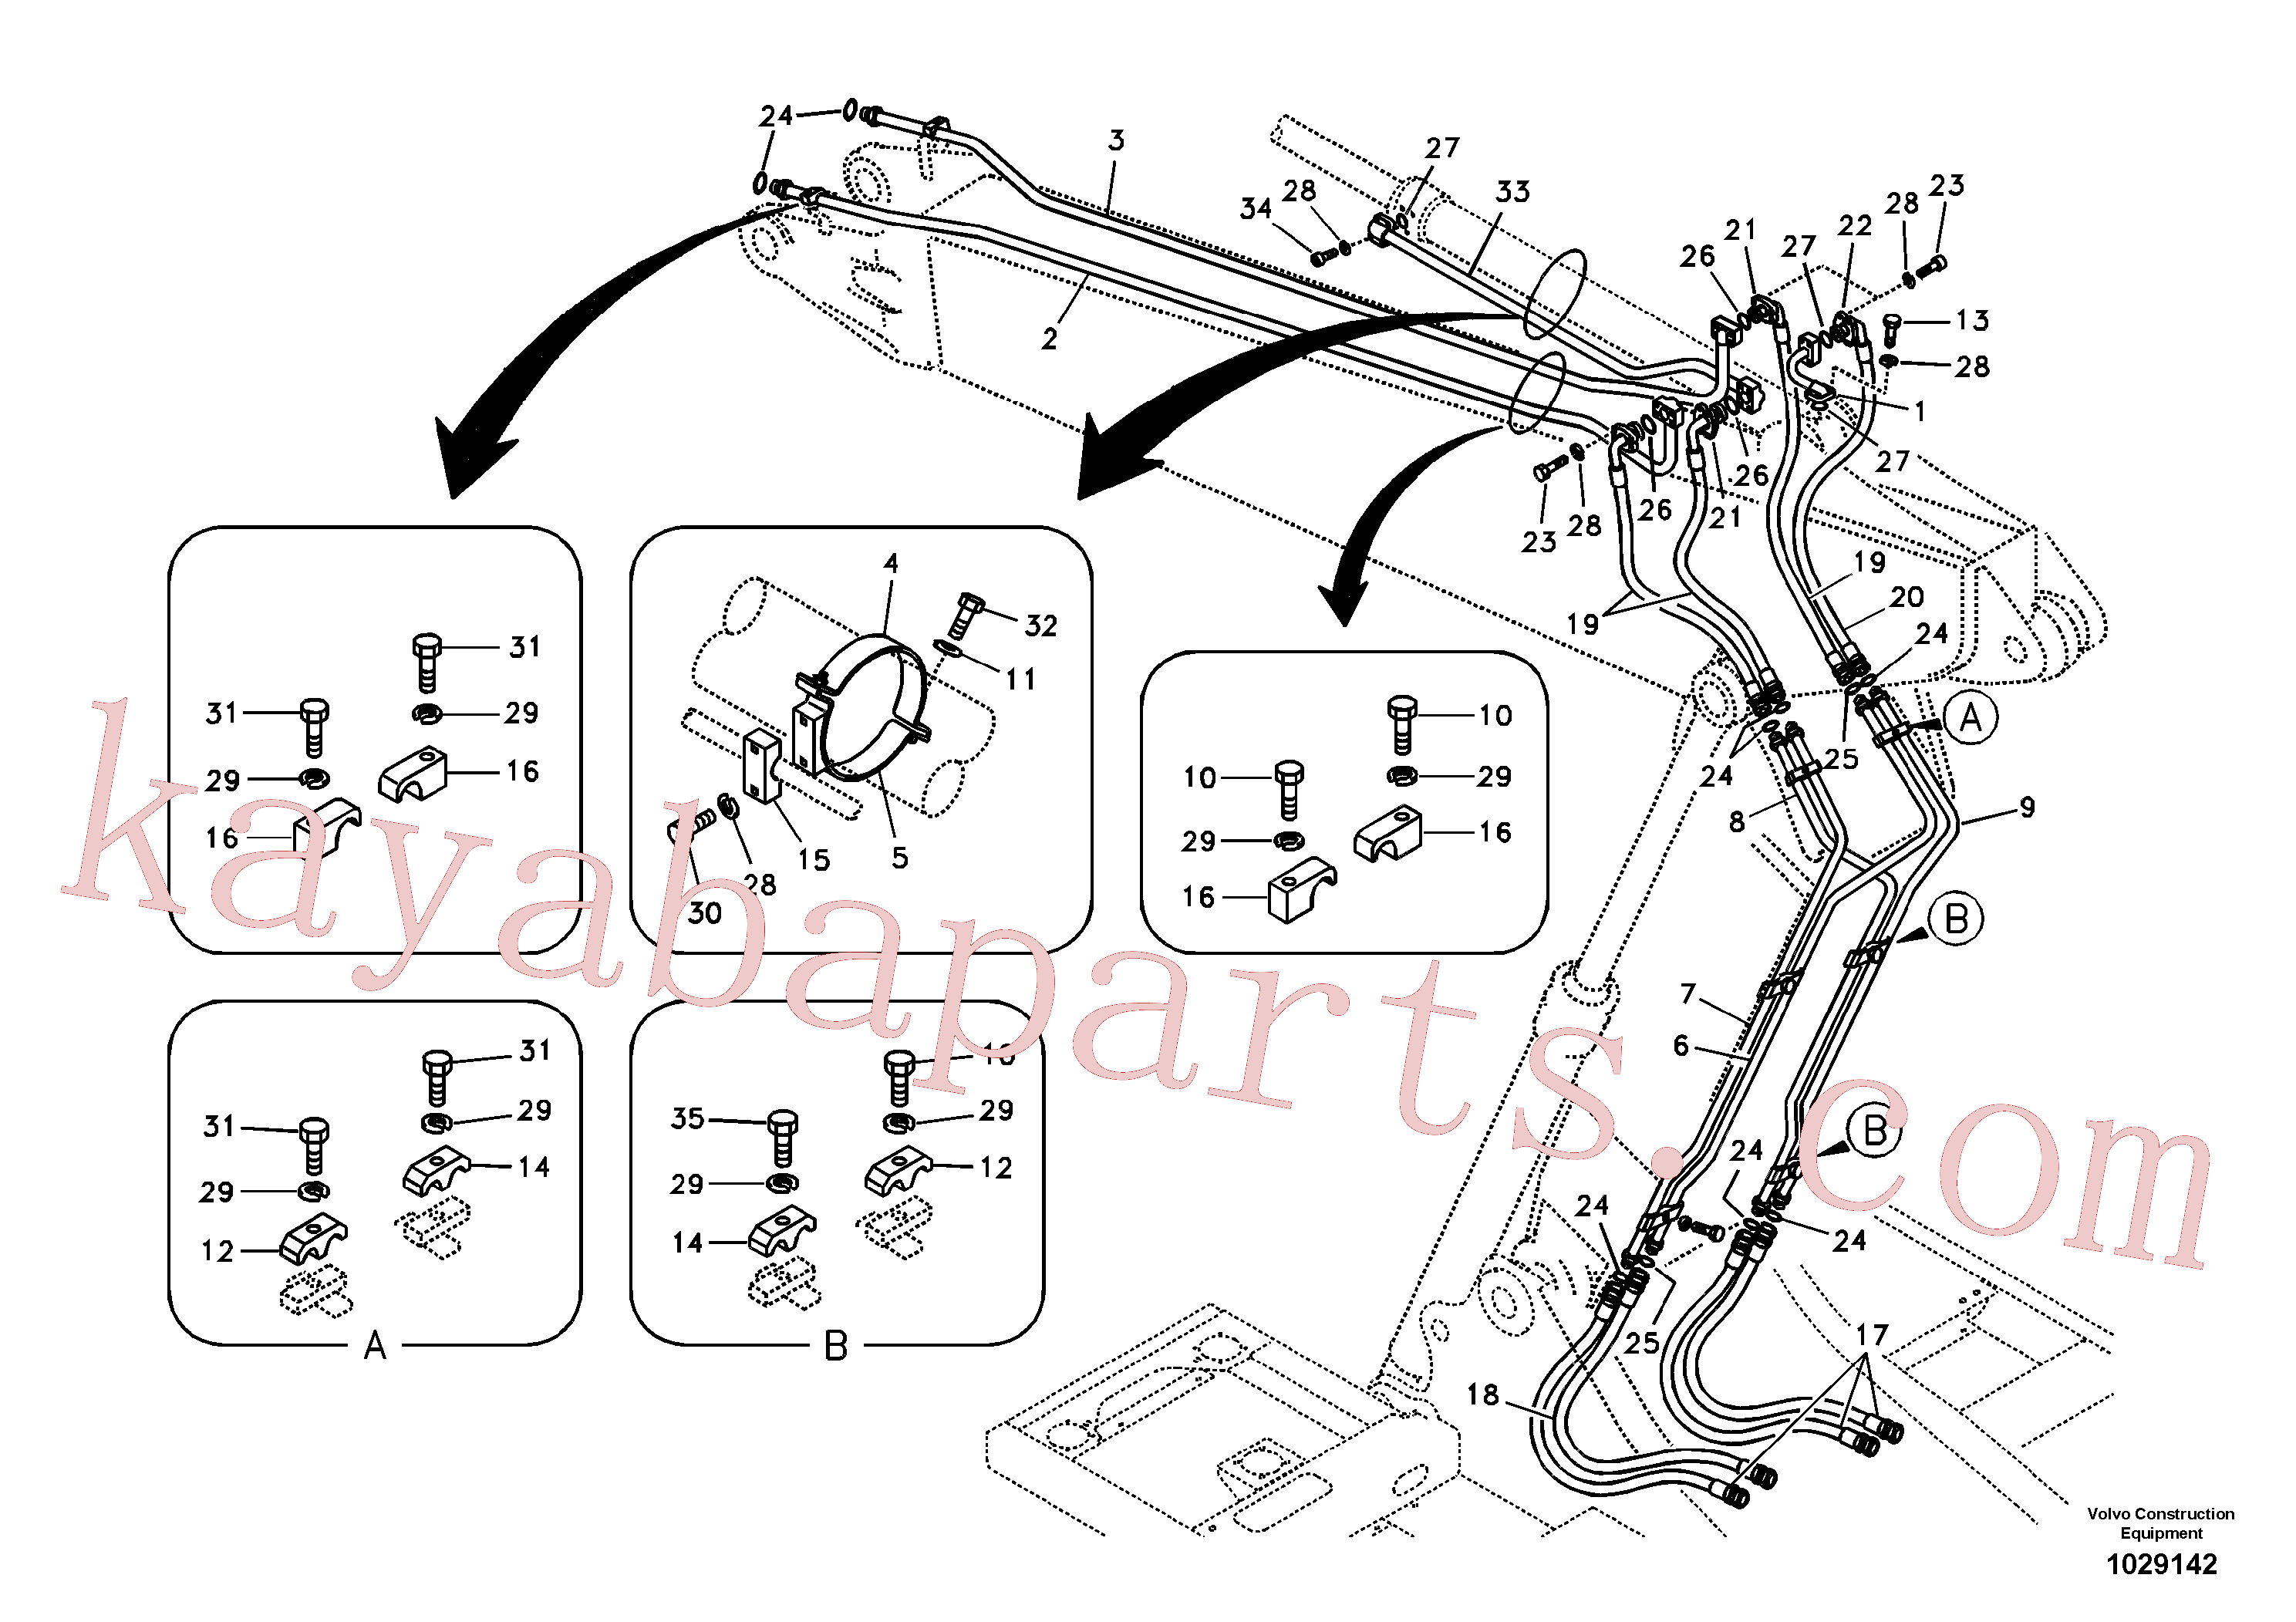 SA9401-05629 for Volvo Working hydraulic, dipper arm cylinder on adjustable boom(1029142 assembly)